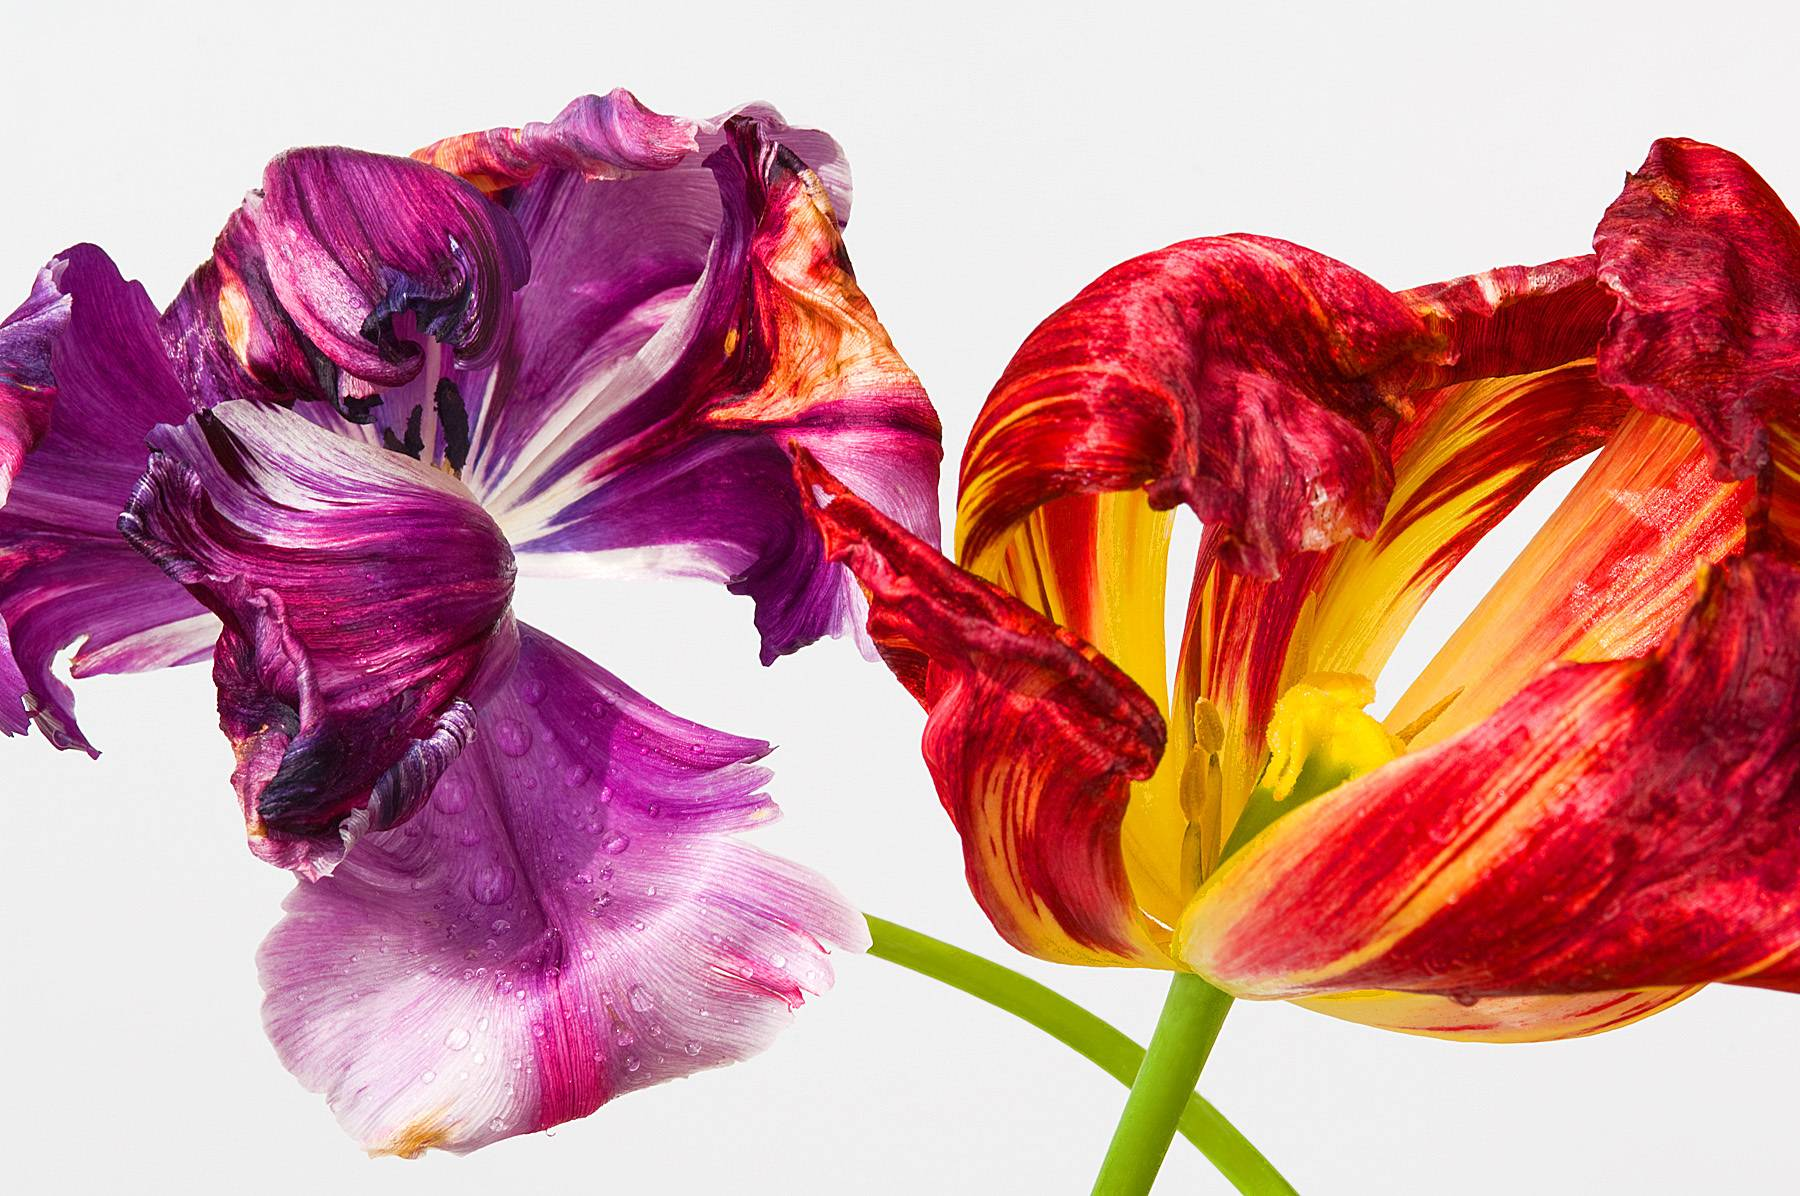 174_1wilted_tulips_website.jpg